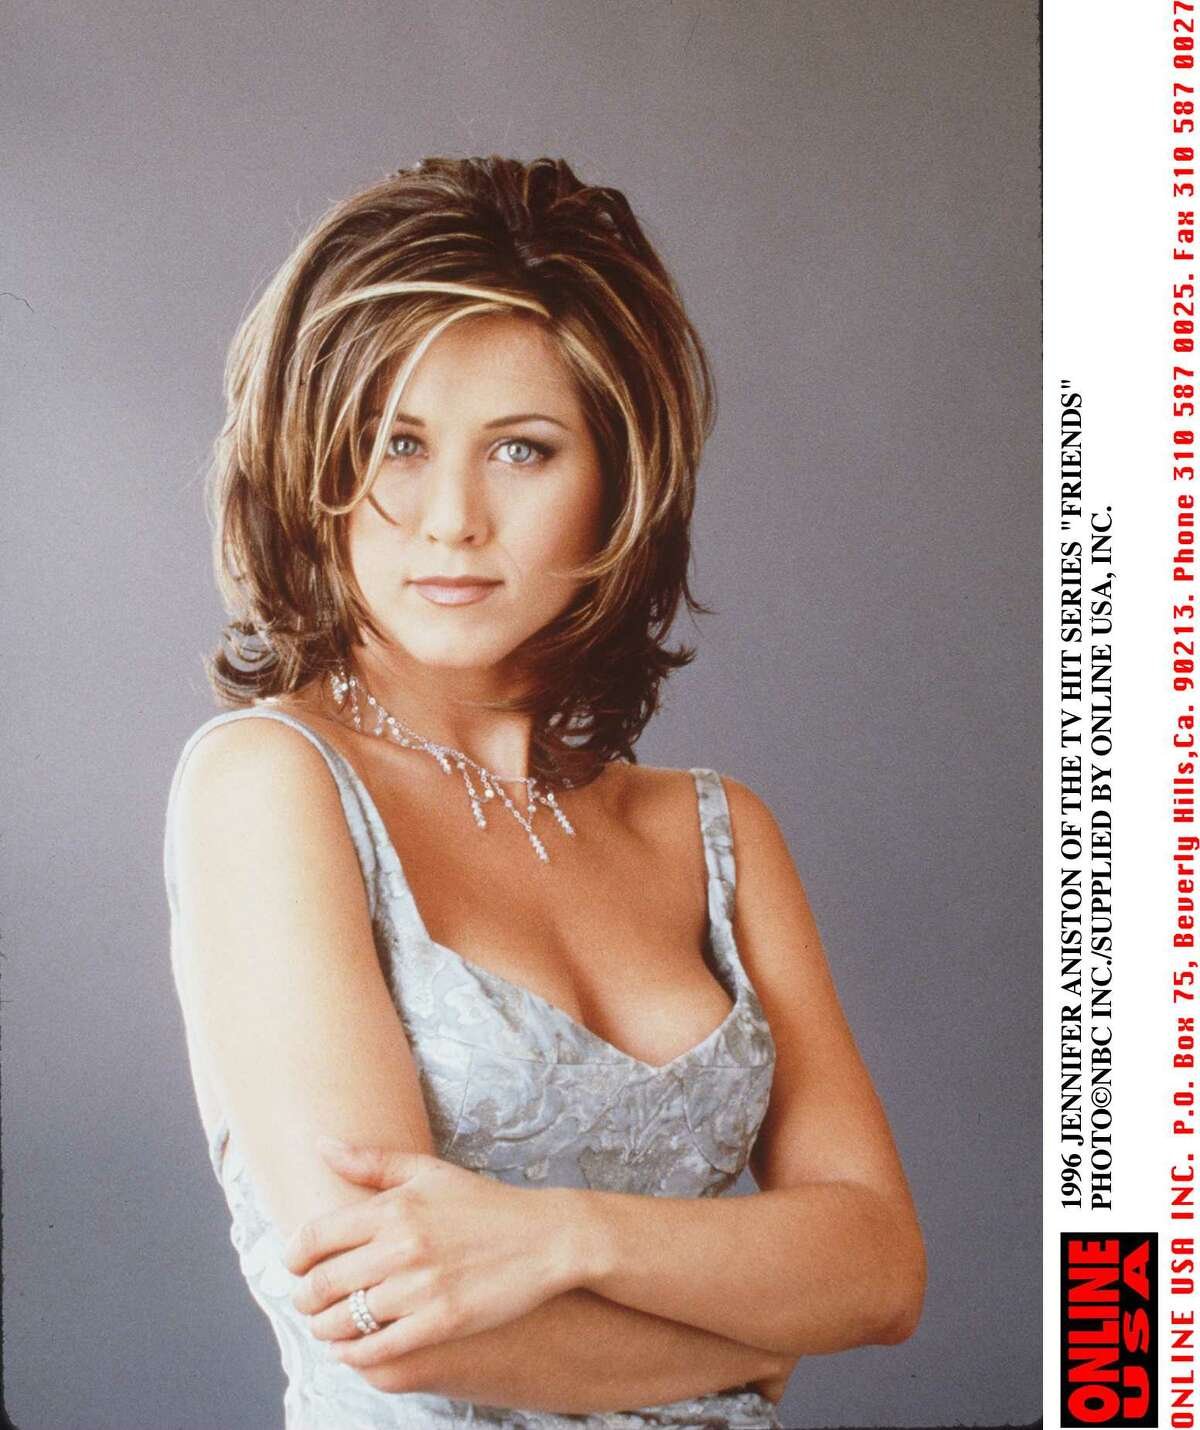 Then the Rachel was born. Aniston from 1995 publicity shot for